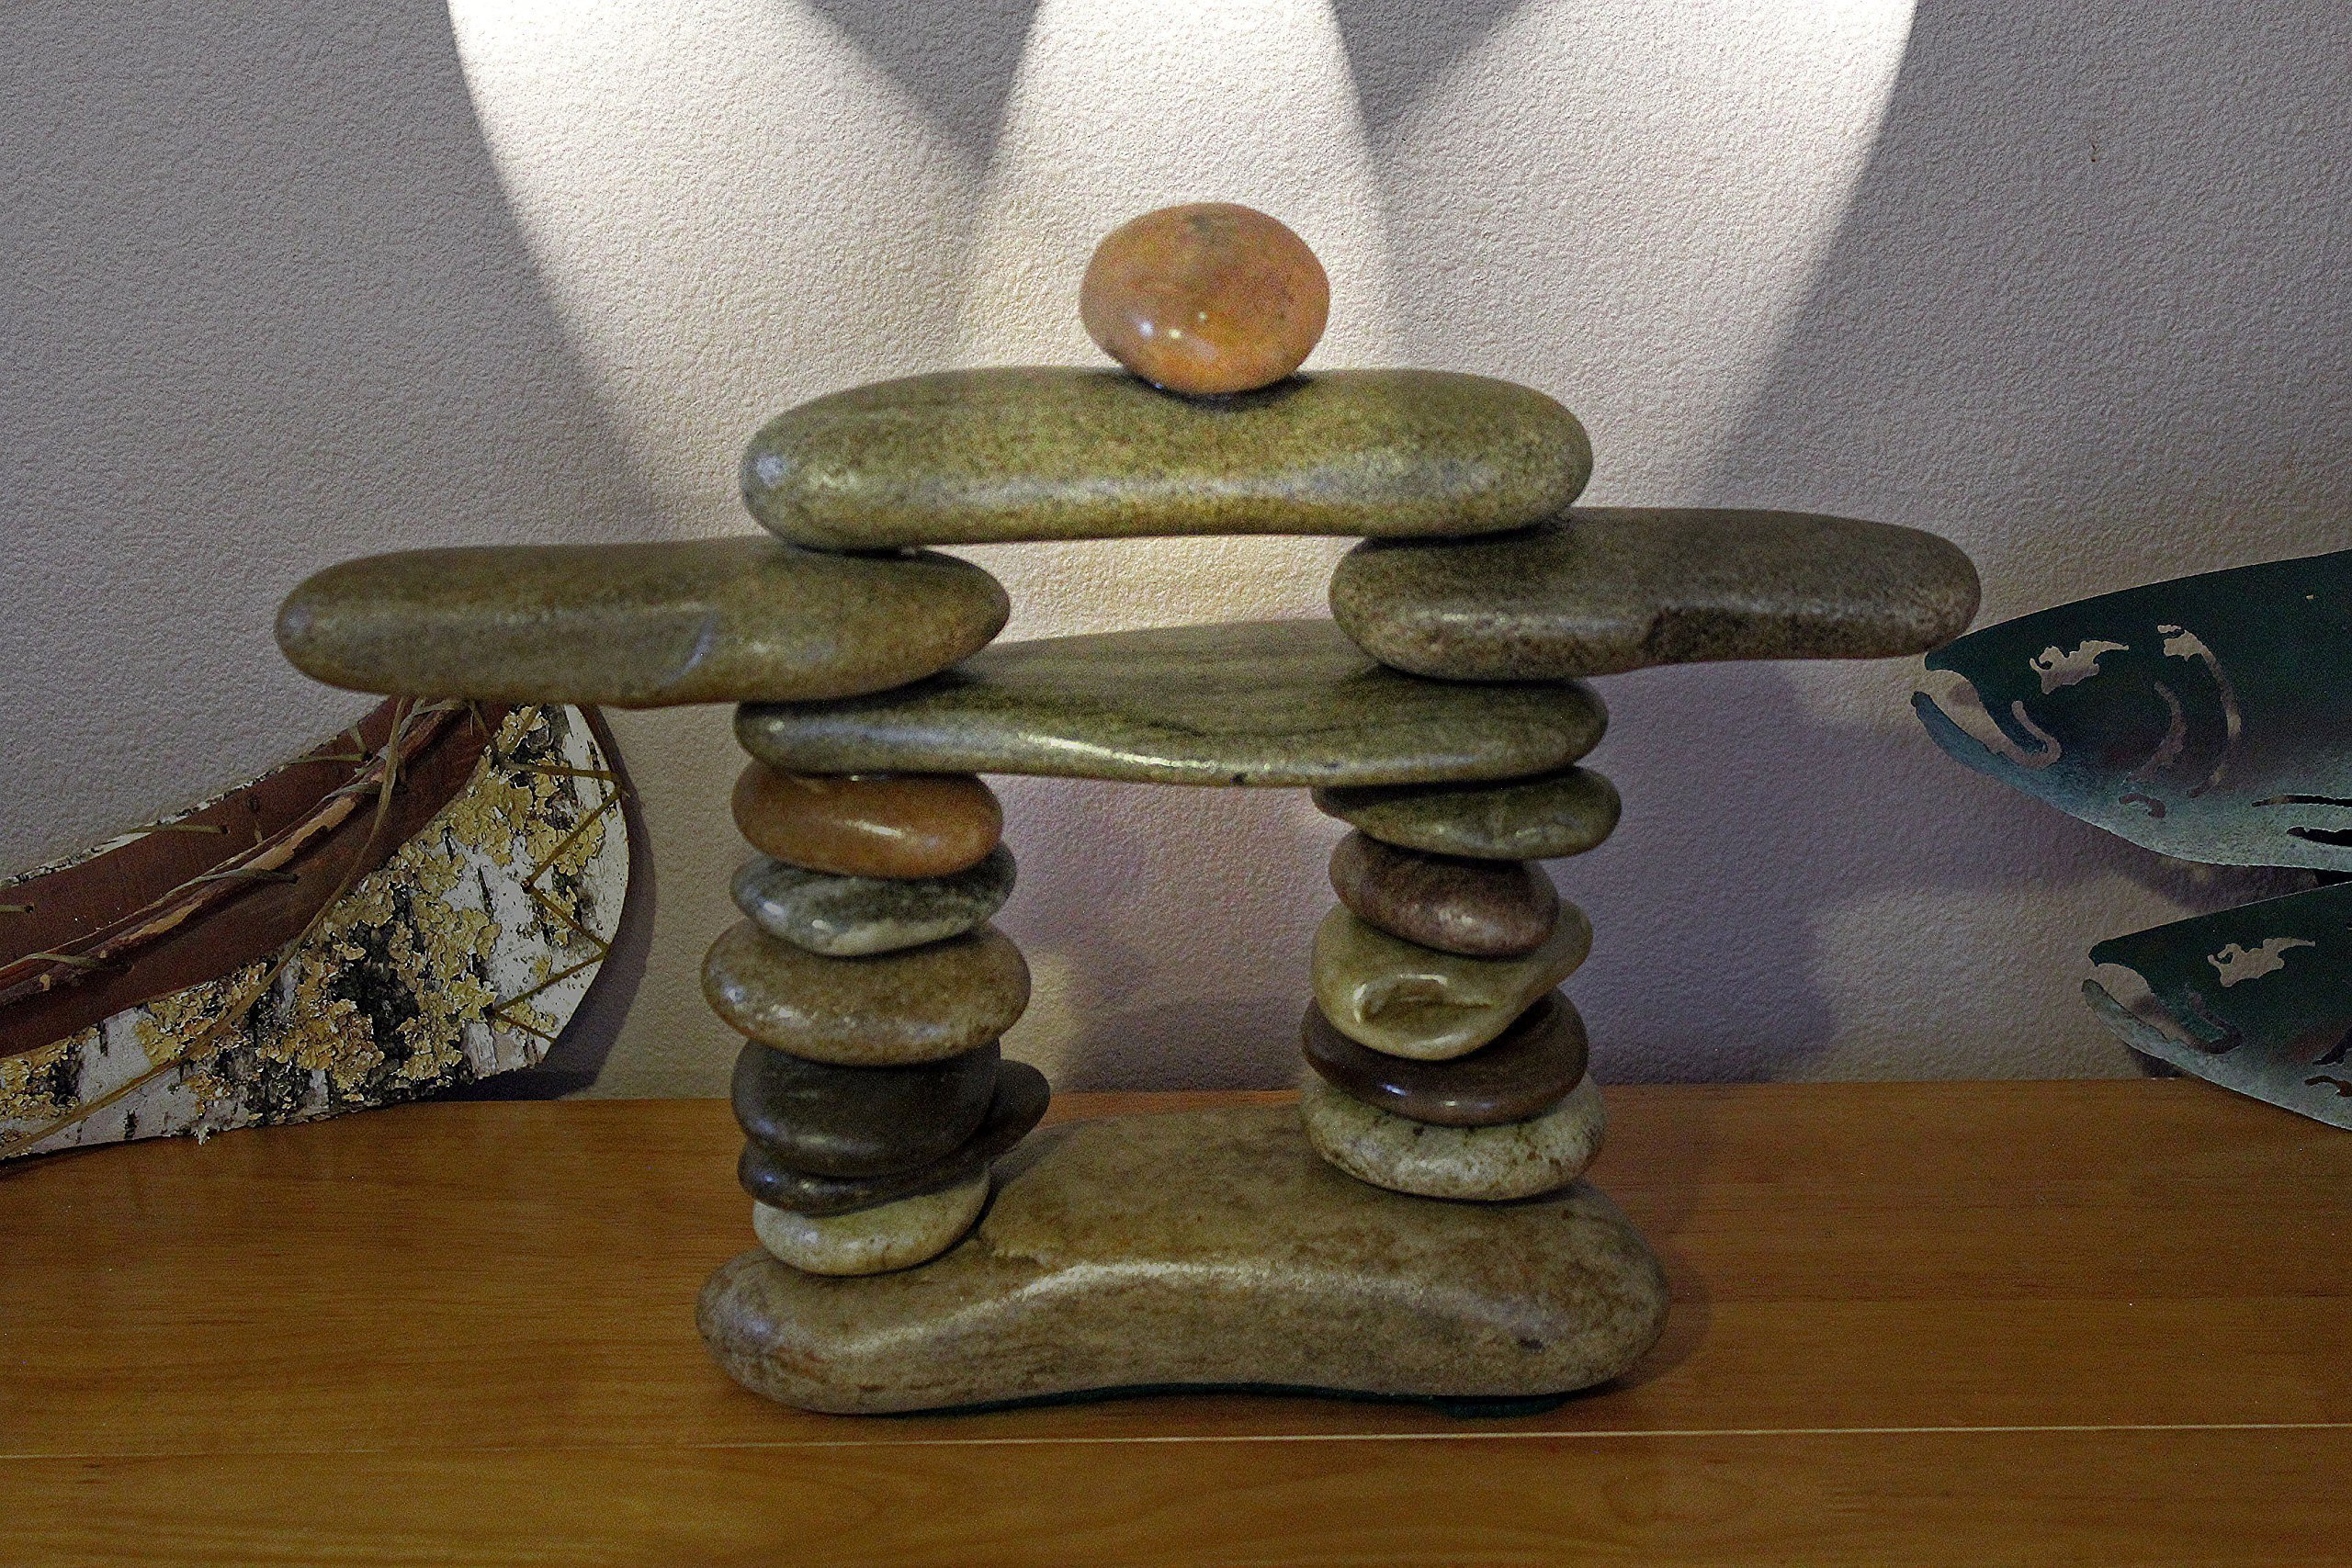 Our Large Stone Inukshuk Inspired by the Inuit People in the Alaska and Canadian Artic